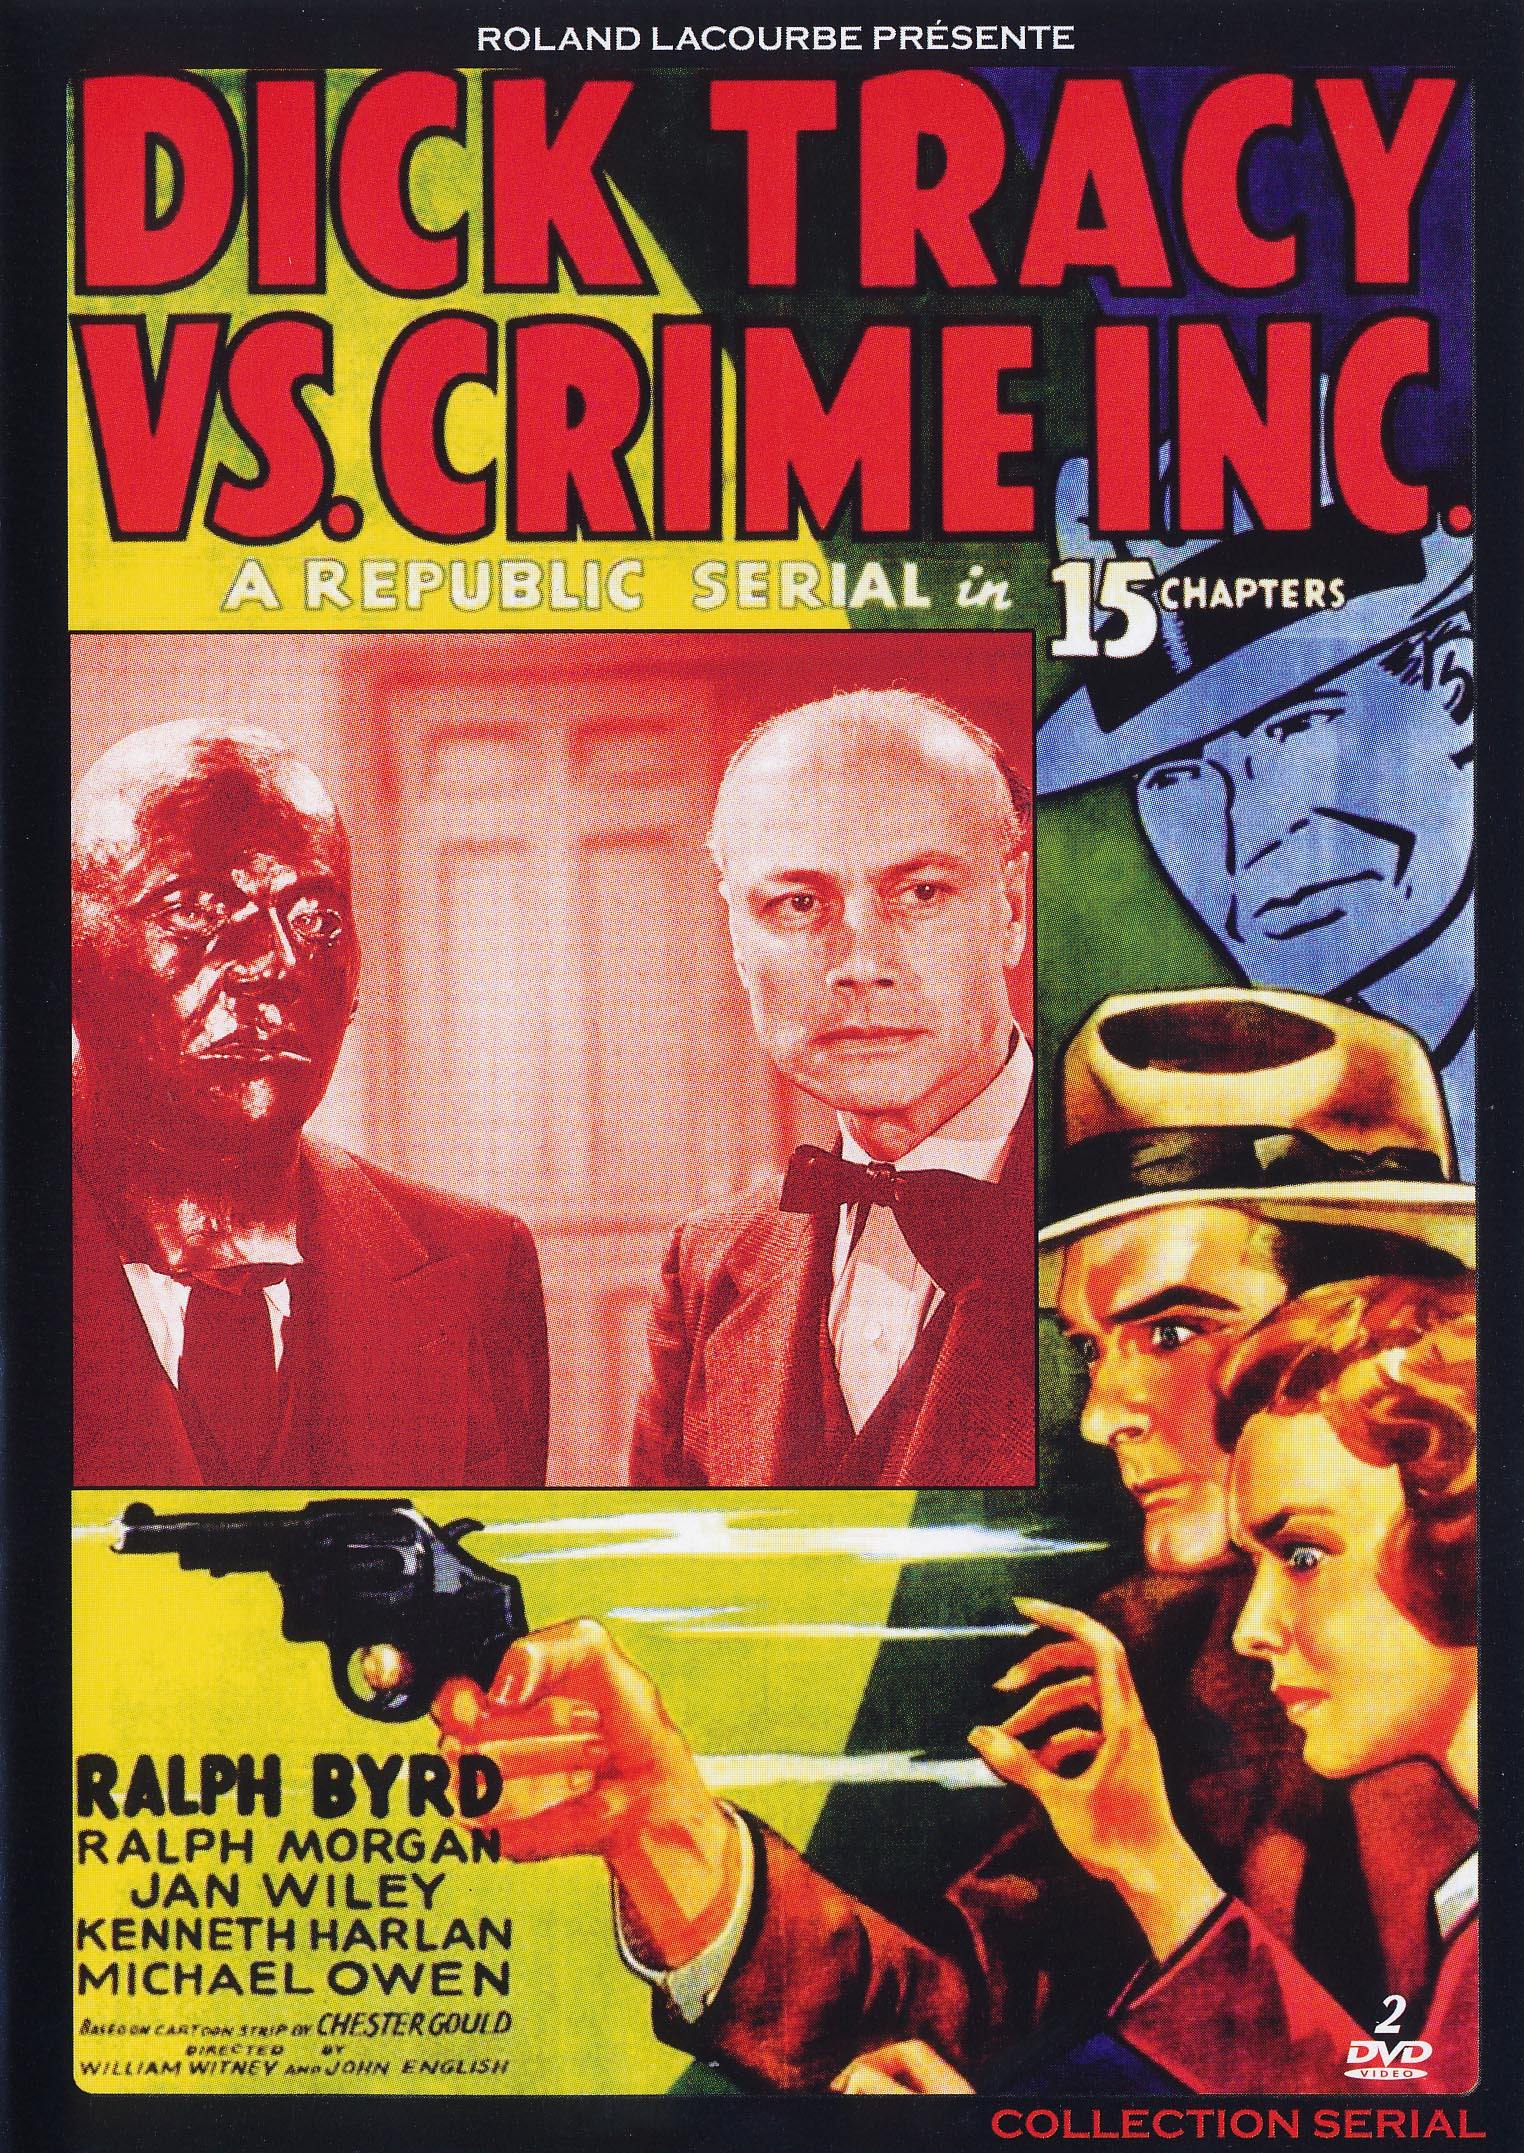 Dick tracy vs crime inc - dvd  collection serial